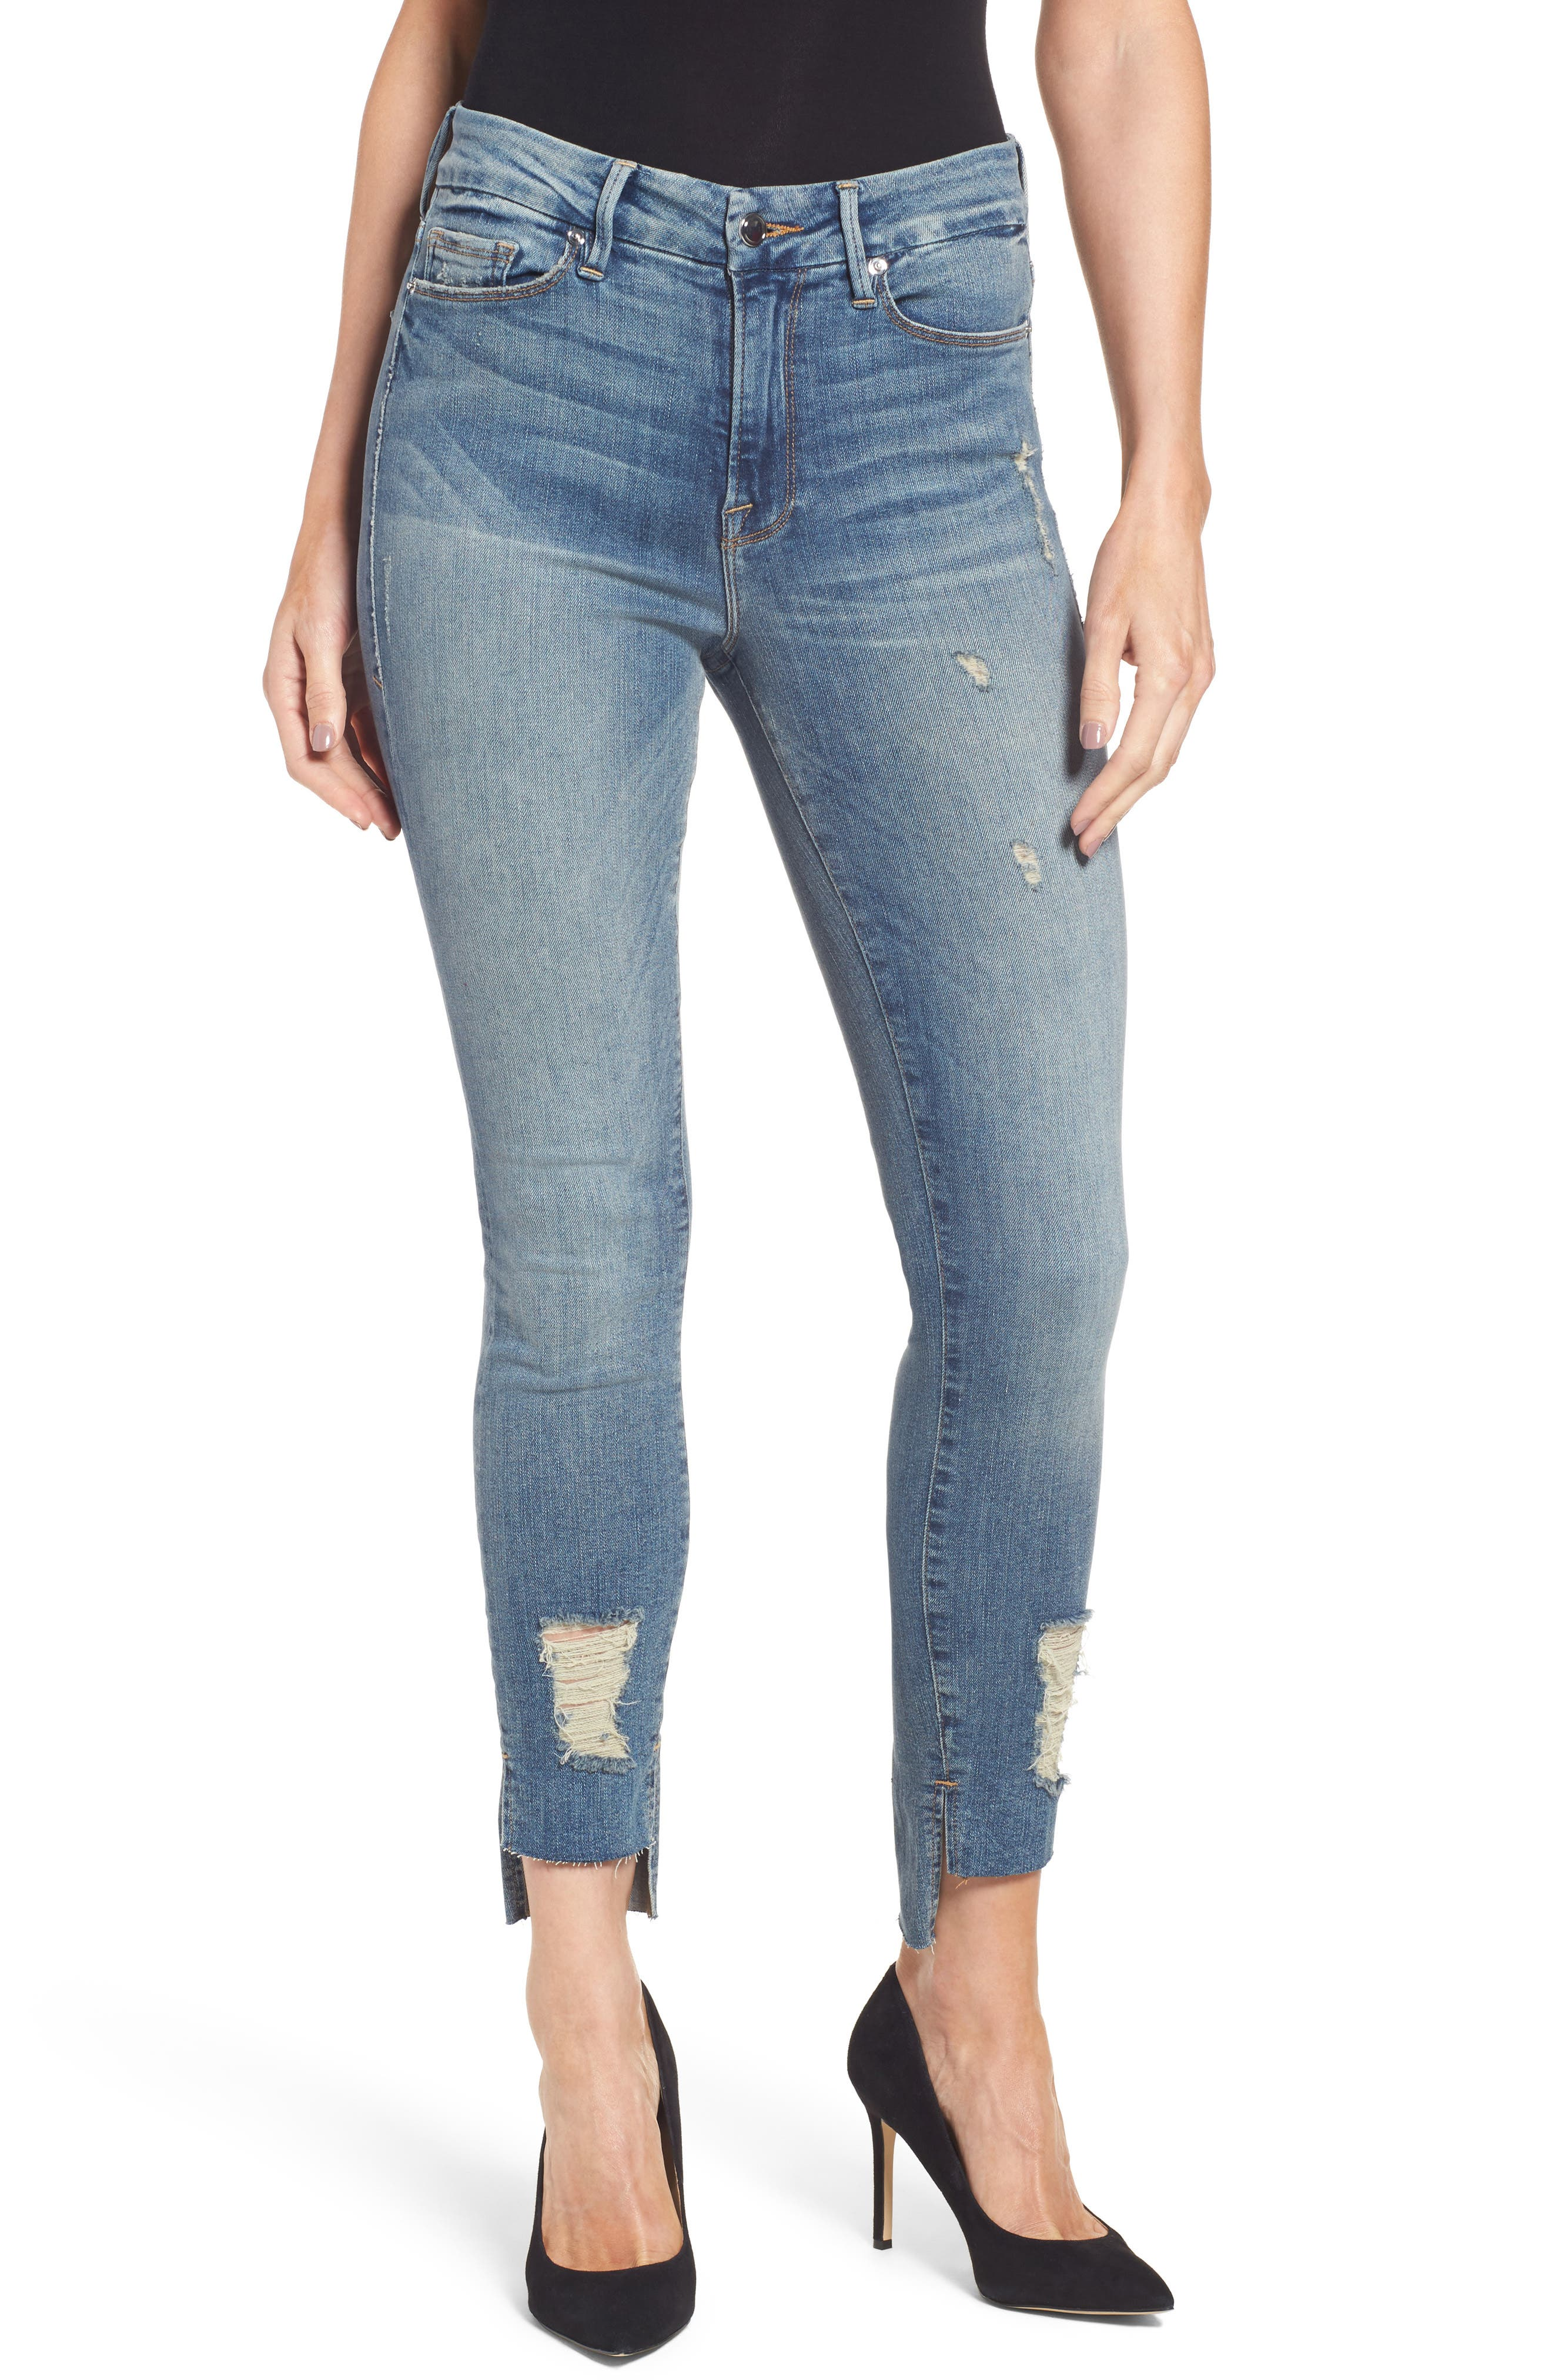 Main Image - Good American Good Legs High Waist Skinny Jeans (Blue 082) (Extended Sizes)